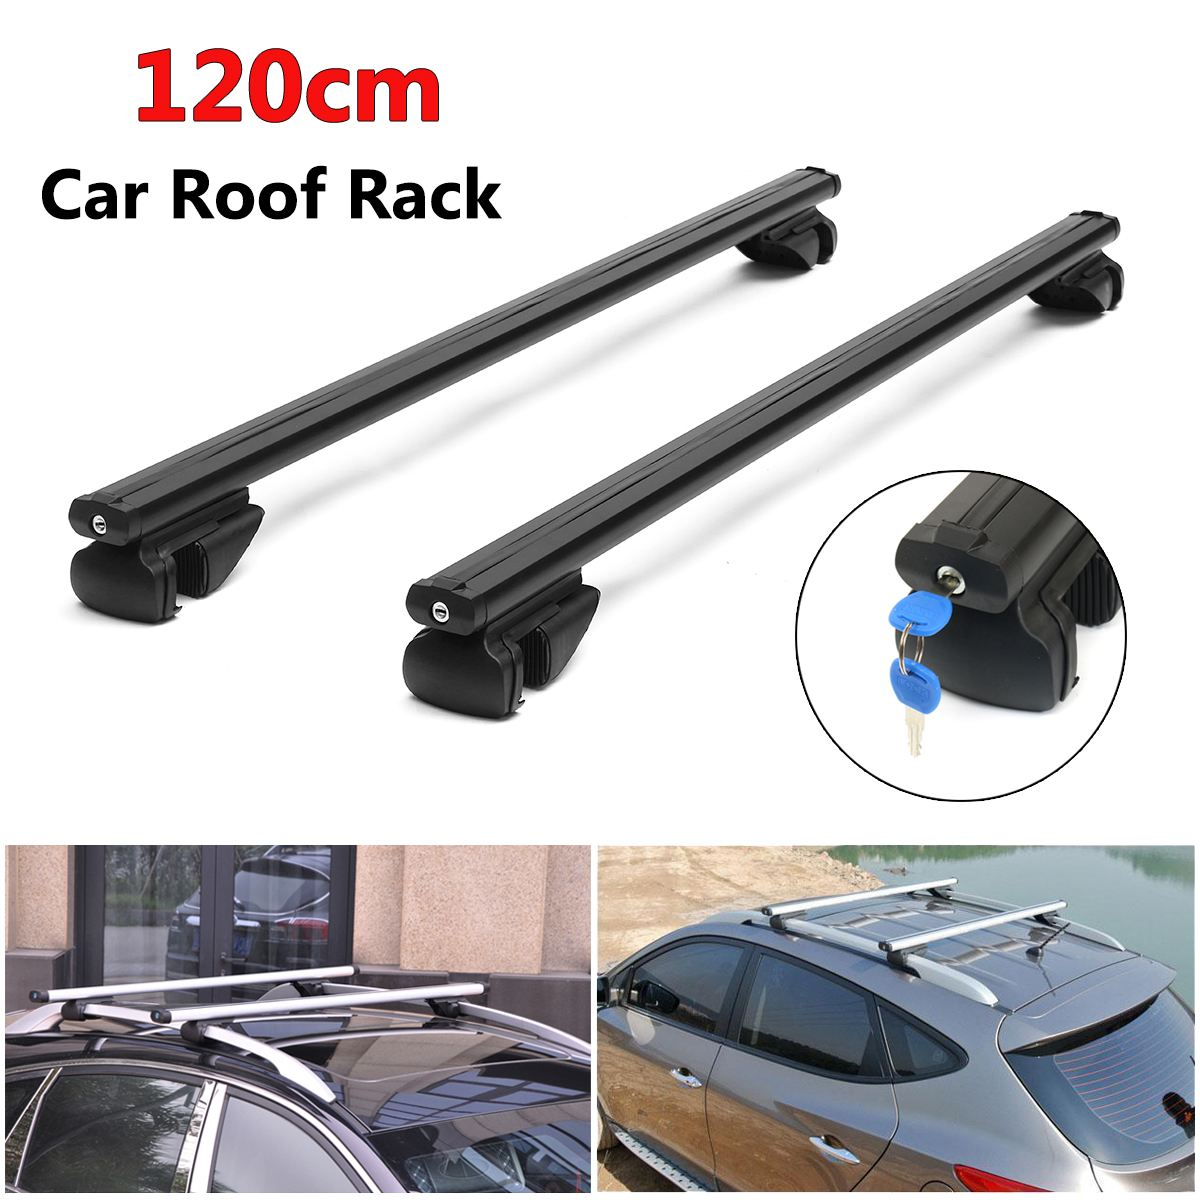 120cm 2Pcs Aluminum Car Top Roof Cross Bars Luggage Cargo Carrier Rack Lockable Universal